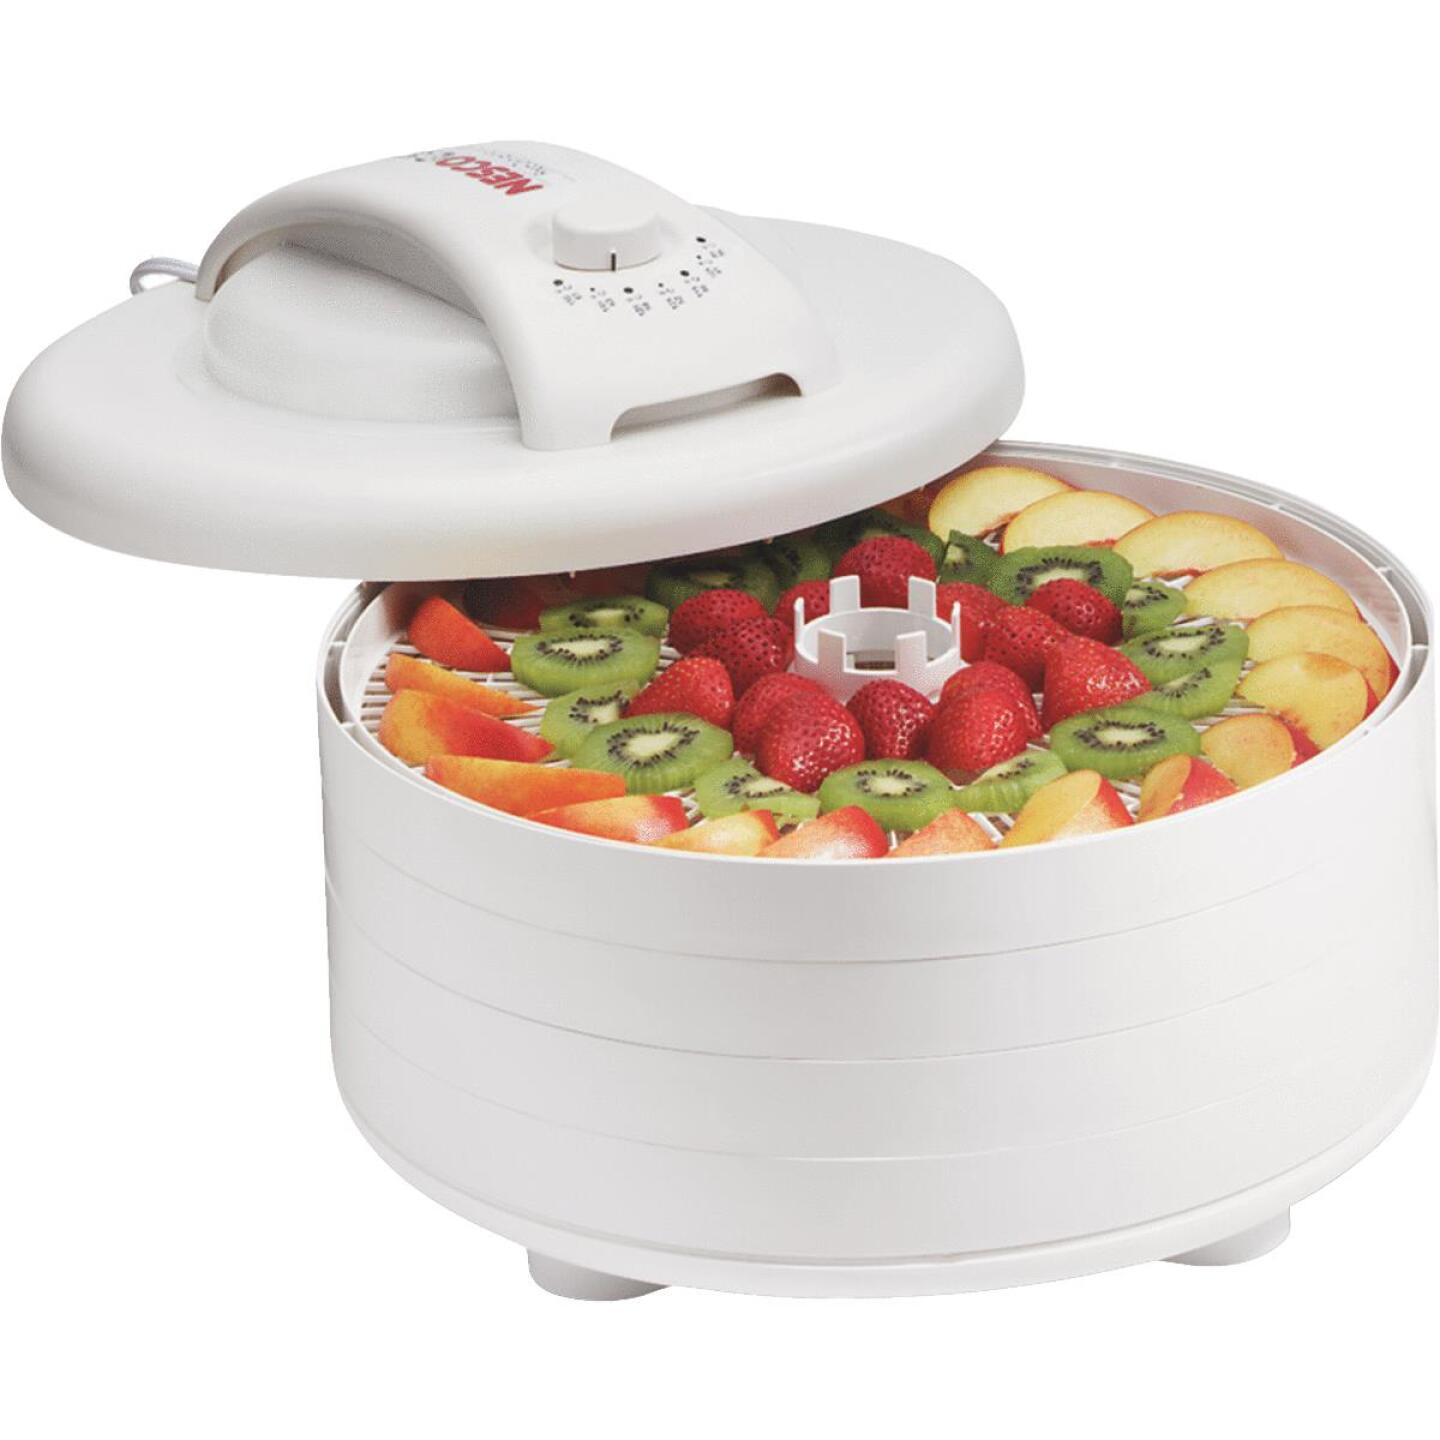 Nesco American Harvest Snackmaster Express Food Dehydrator Image 1